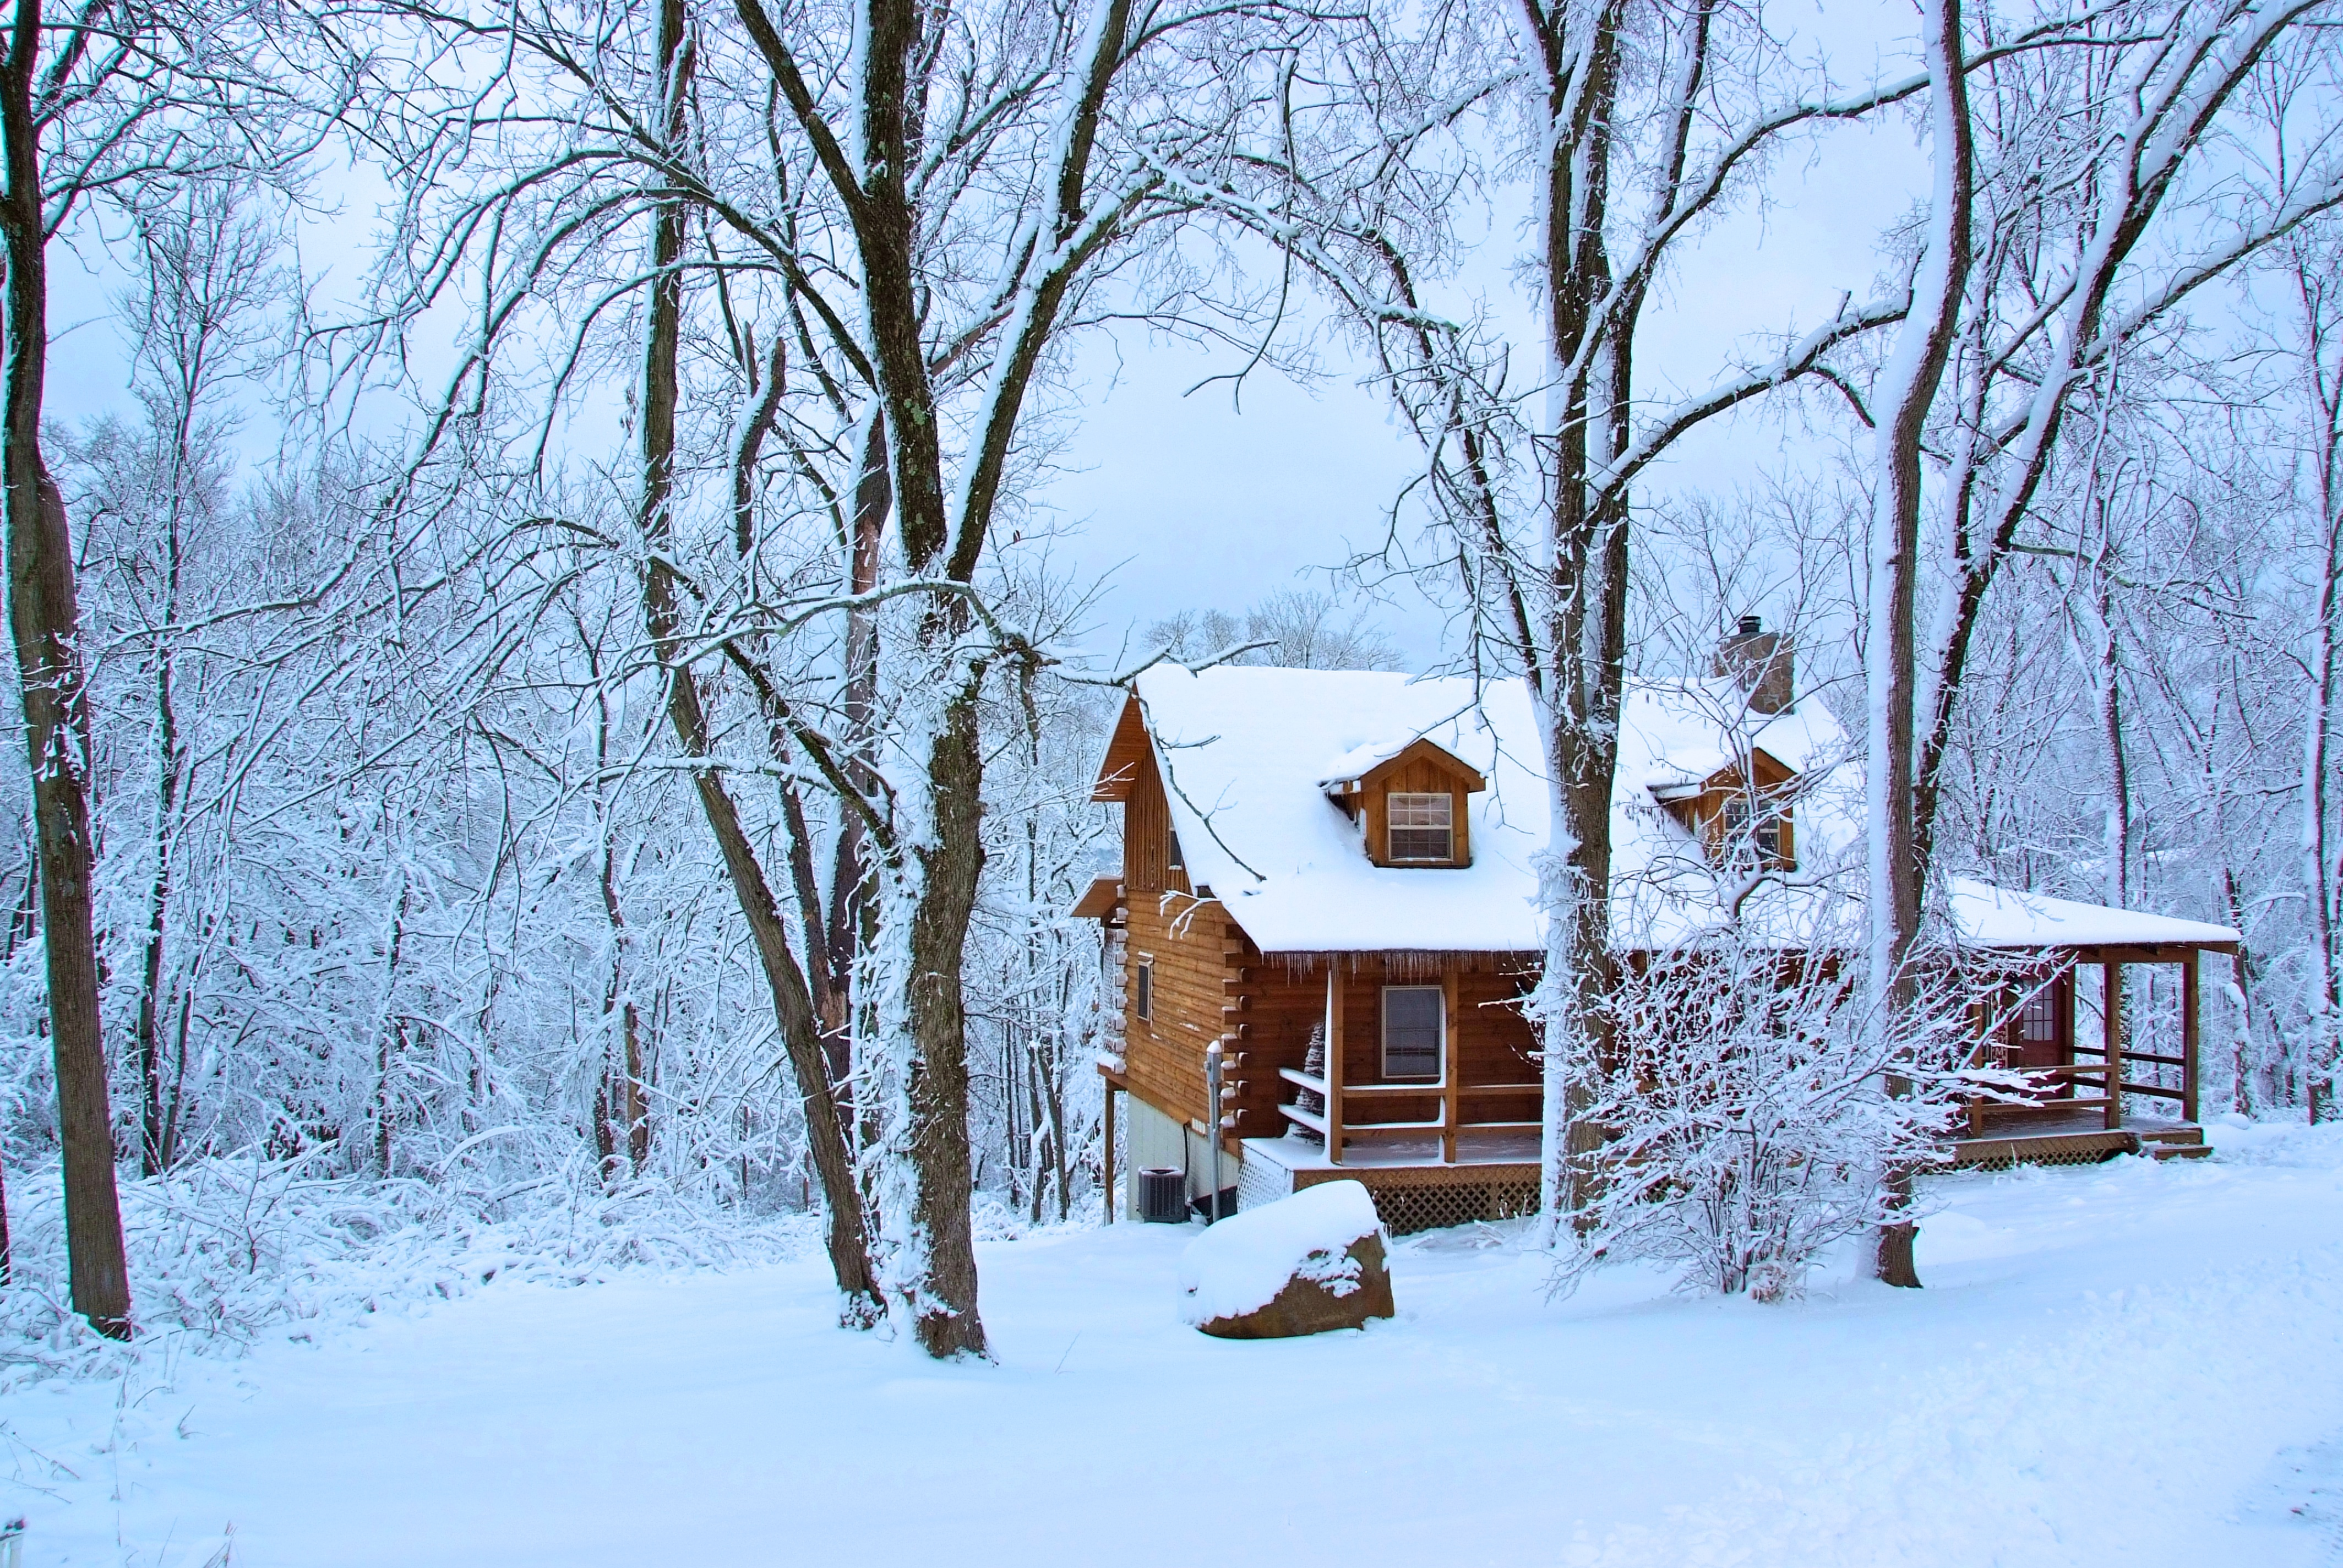 Log cabin winter wallpapers wallpapersafari